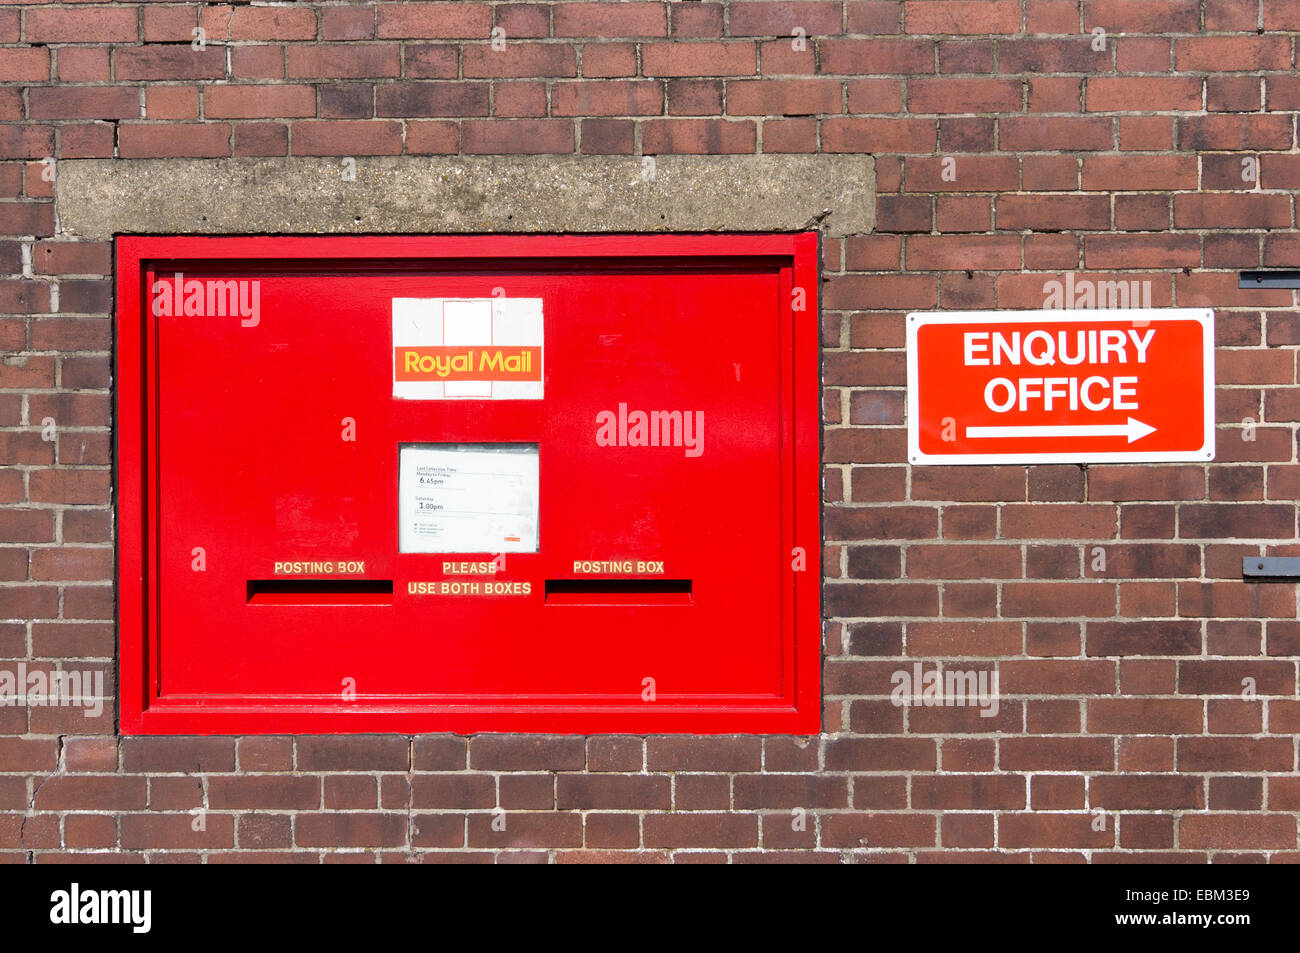 Red Royal Mail post box with enquiry office sign - Stock Image